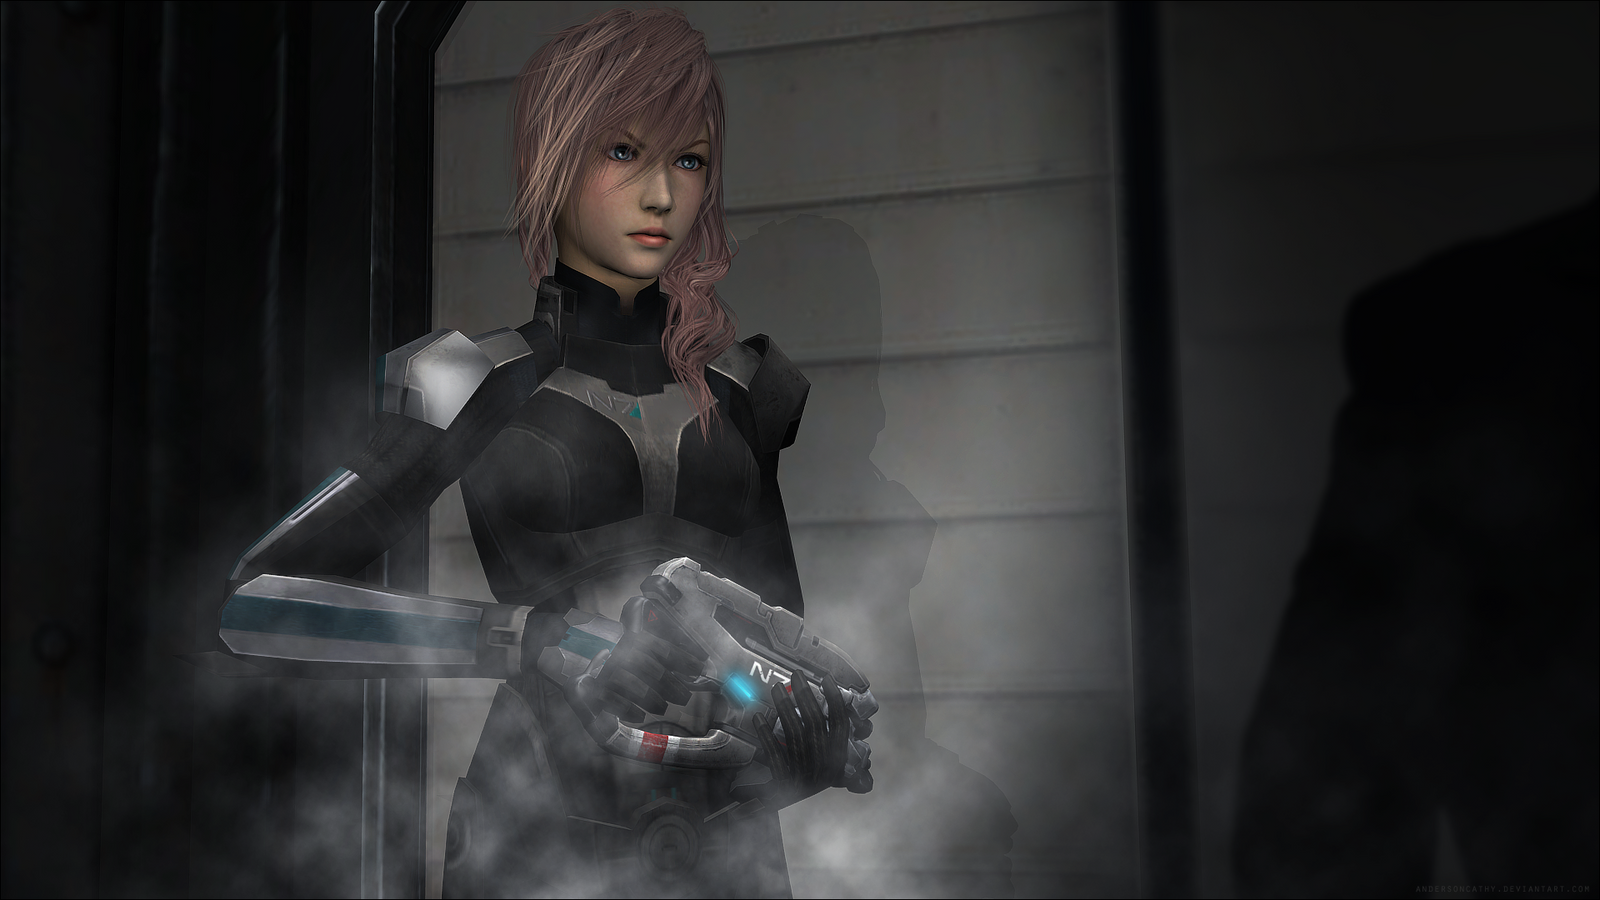 Your New Mission: Weapon and Task - Lightning by andersoncathy